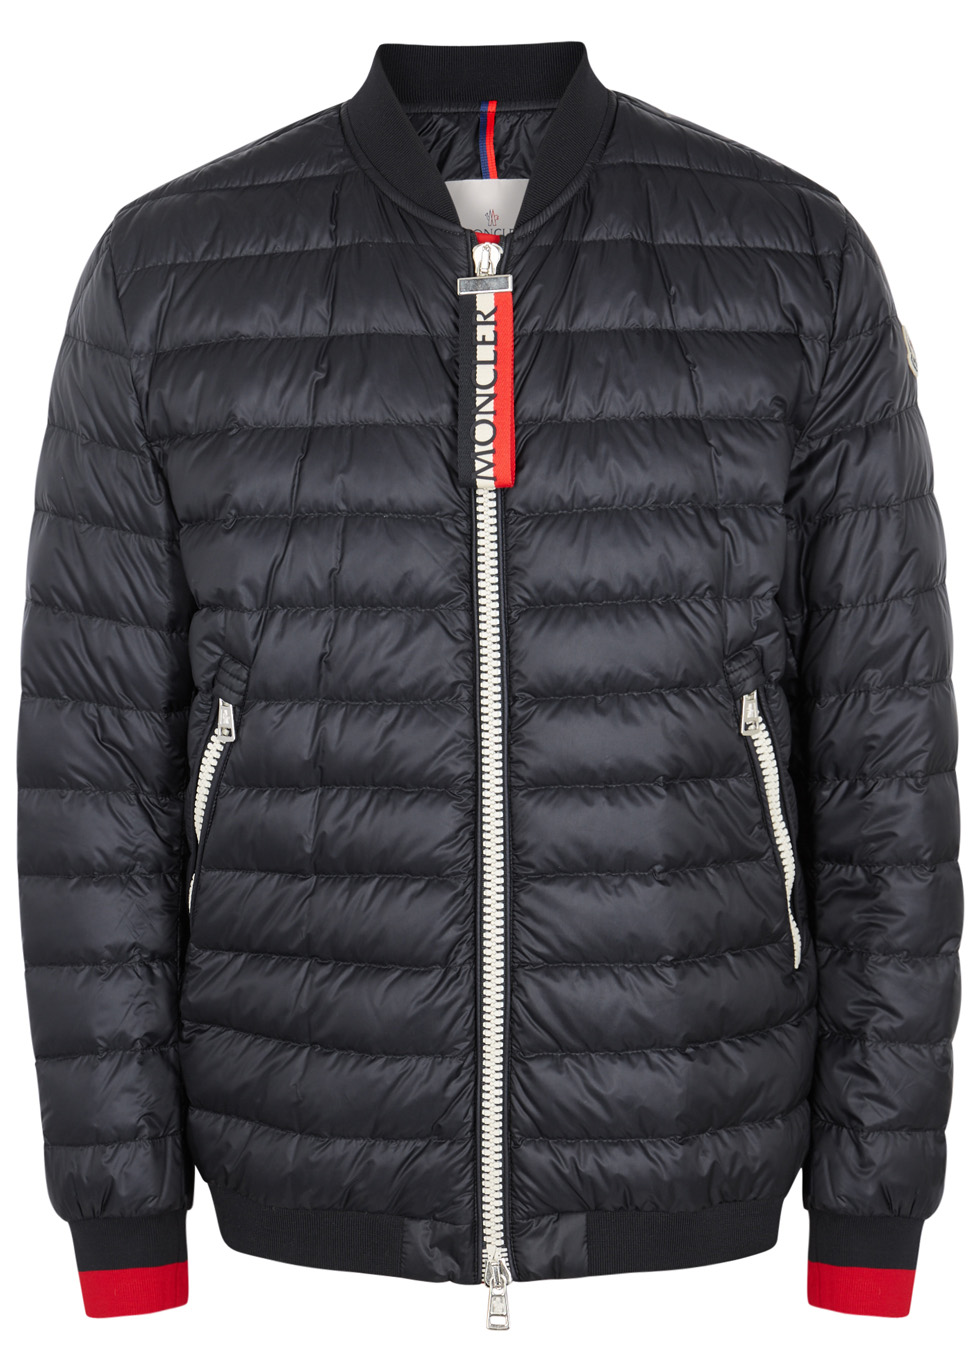 Daneb quilted shell jacket - Moncler